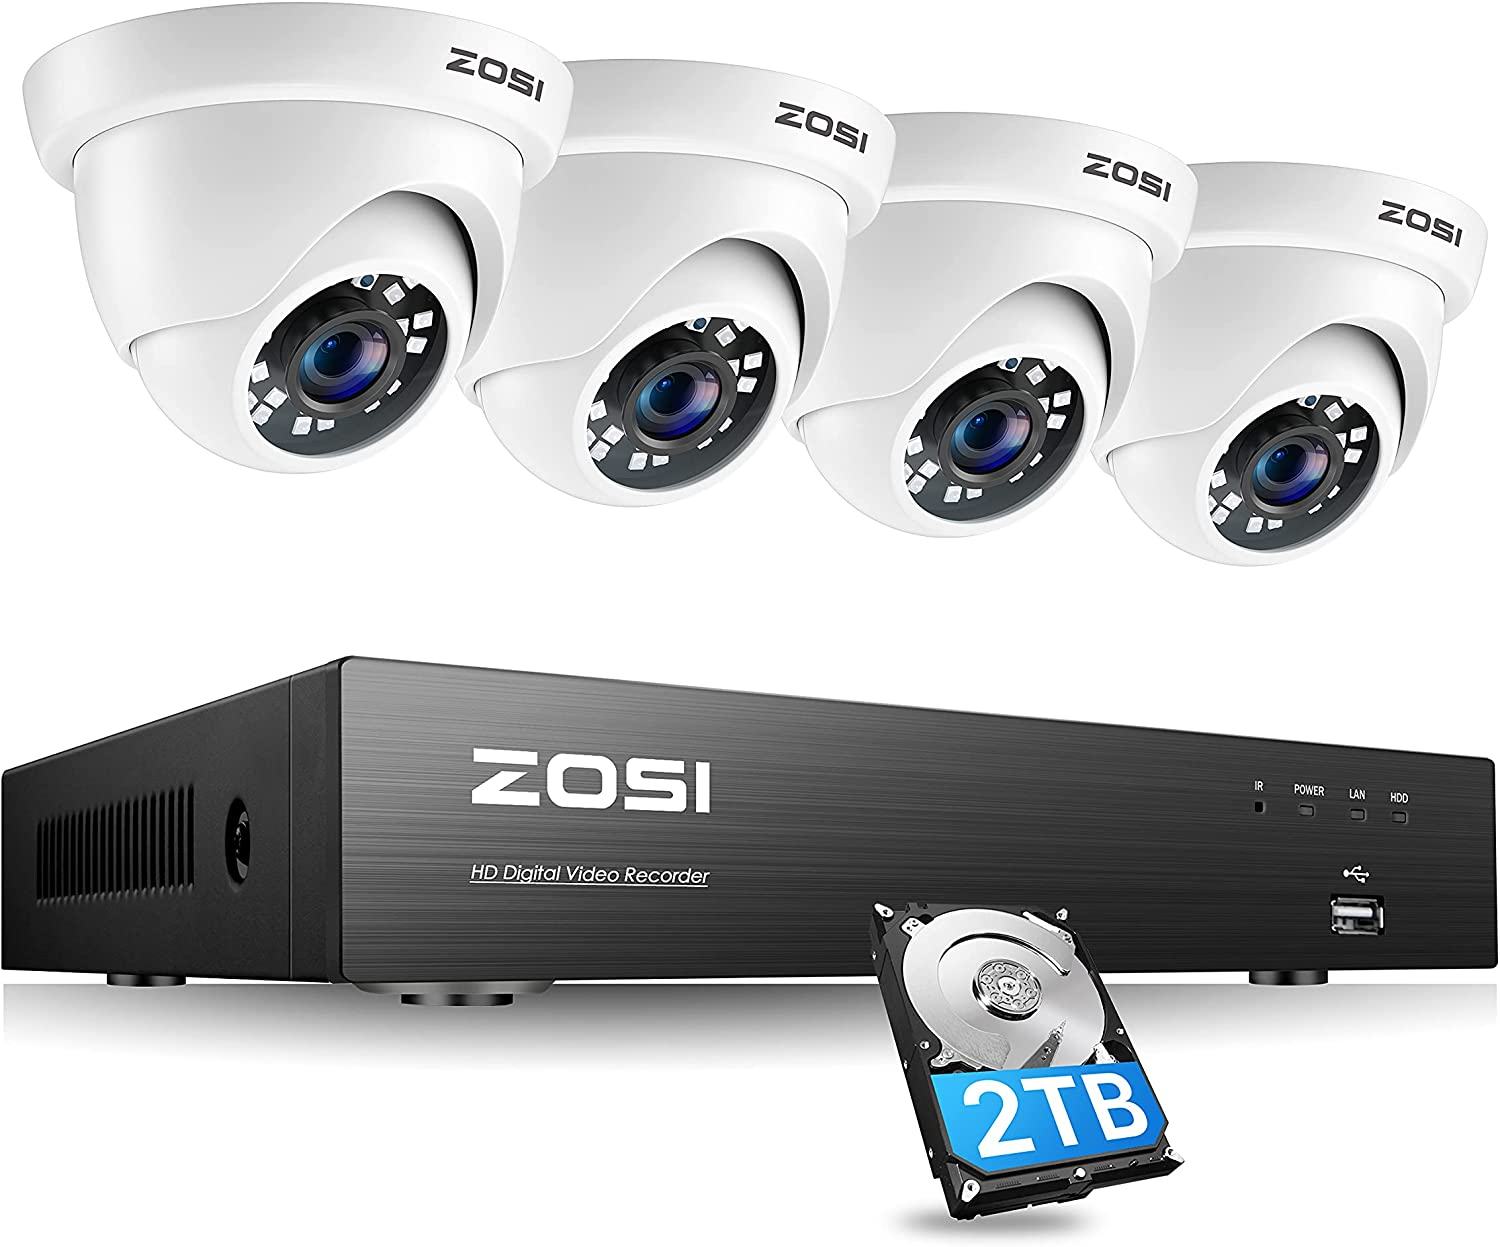 ZOSI 4K Ultra HD Security Cameras System with 2TB Hard Drive, 8Channel H.265+ 4K (3840x2160) Video DVR and 4PCS 4K (8MP) Indoor Outdoor Home Surveillance Dome CCTV Cameras with 150ft Night Vision